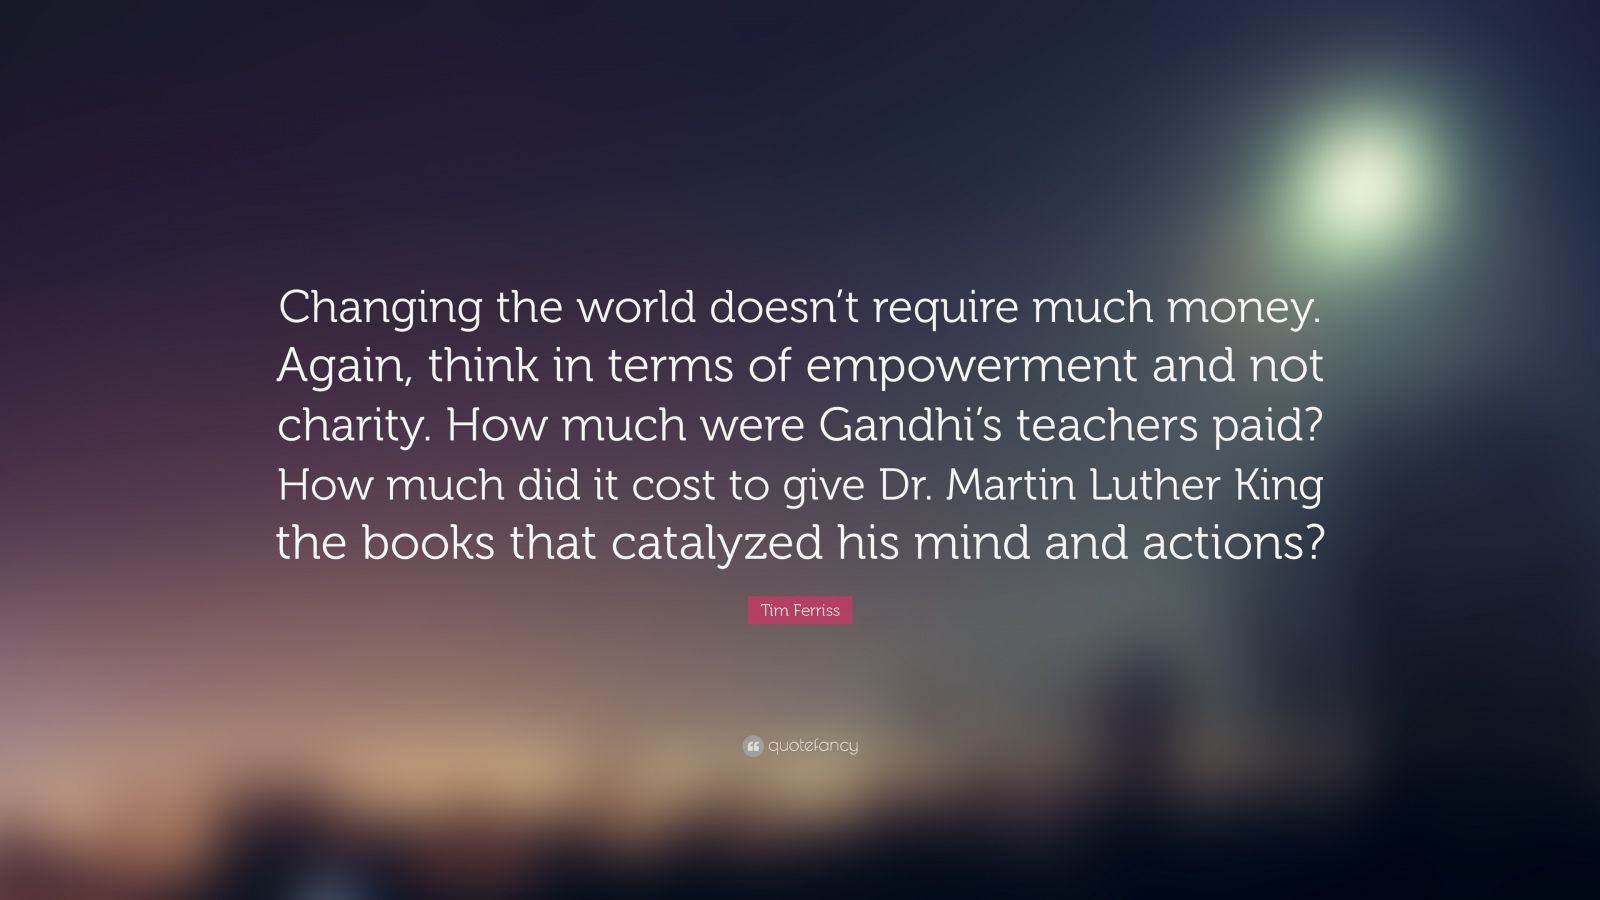 """Tim Ferriss Quote: """"Changing the world doesn't require much money. Again, think in terms of empowerment and not charity. How much were Gandhi's teachers paid? How much did it cost to give Dr. Martin Luther King the books that catalyzed his mind and actions?"""""""